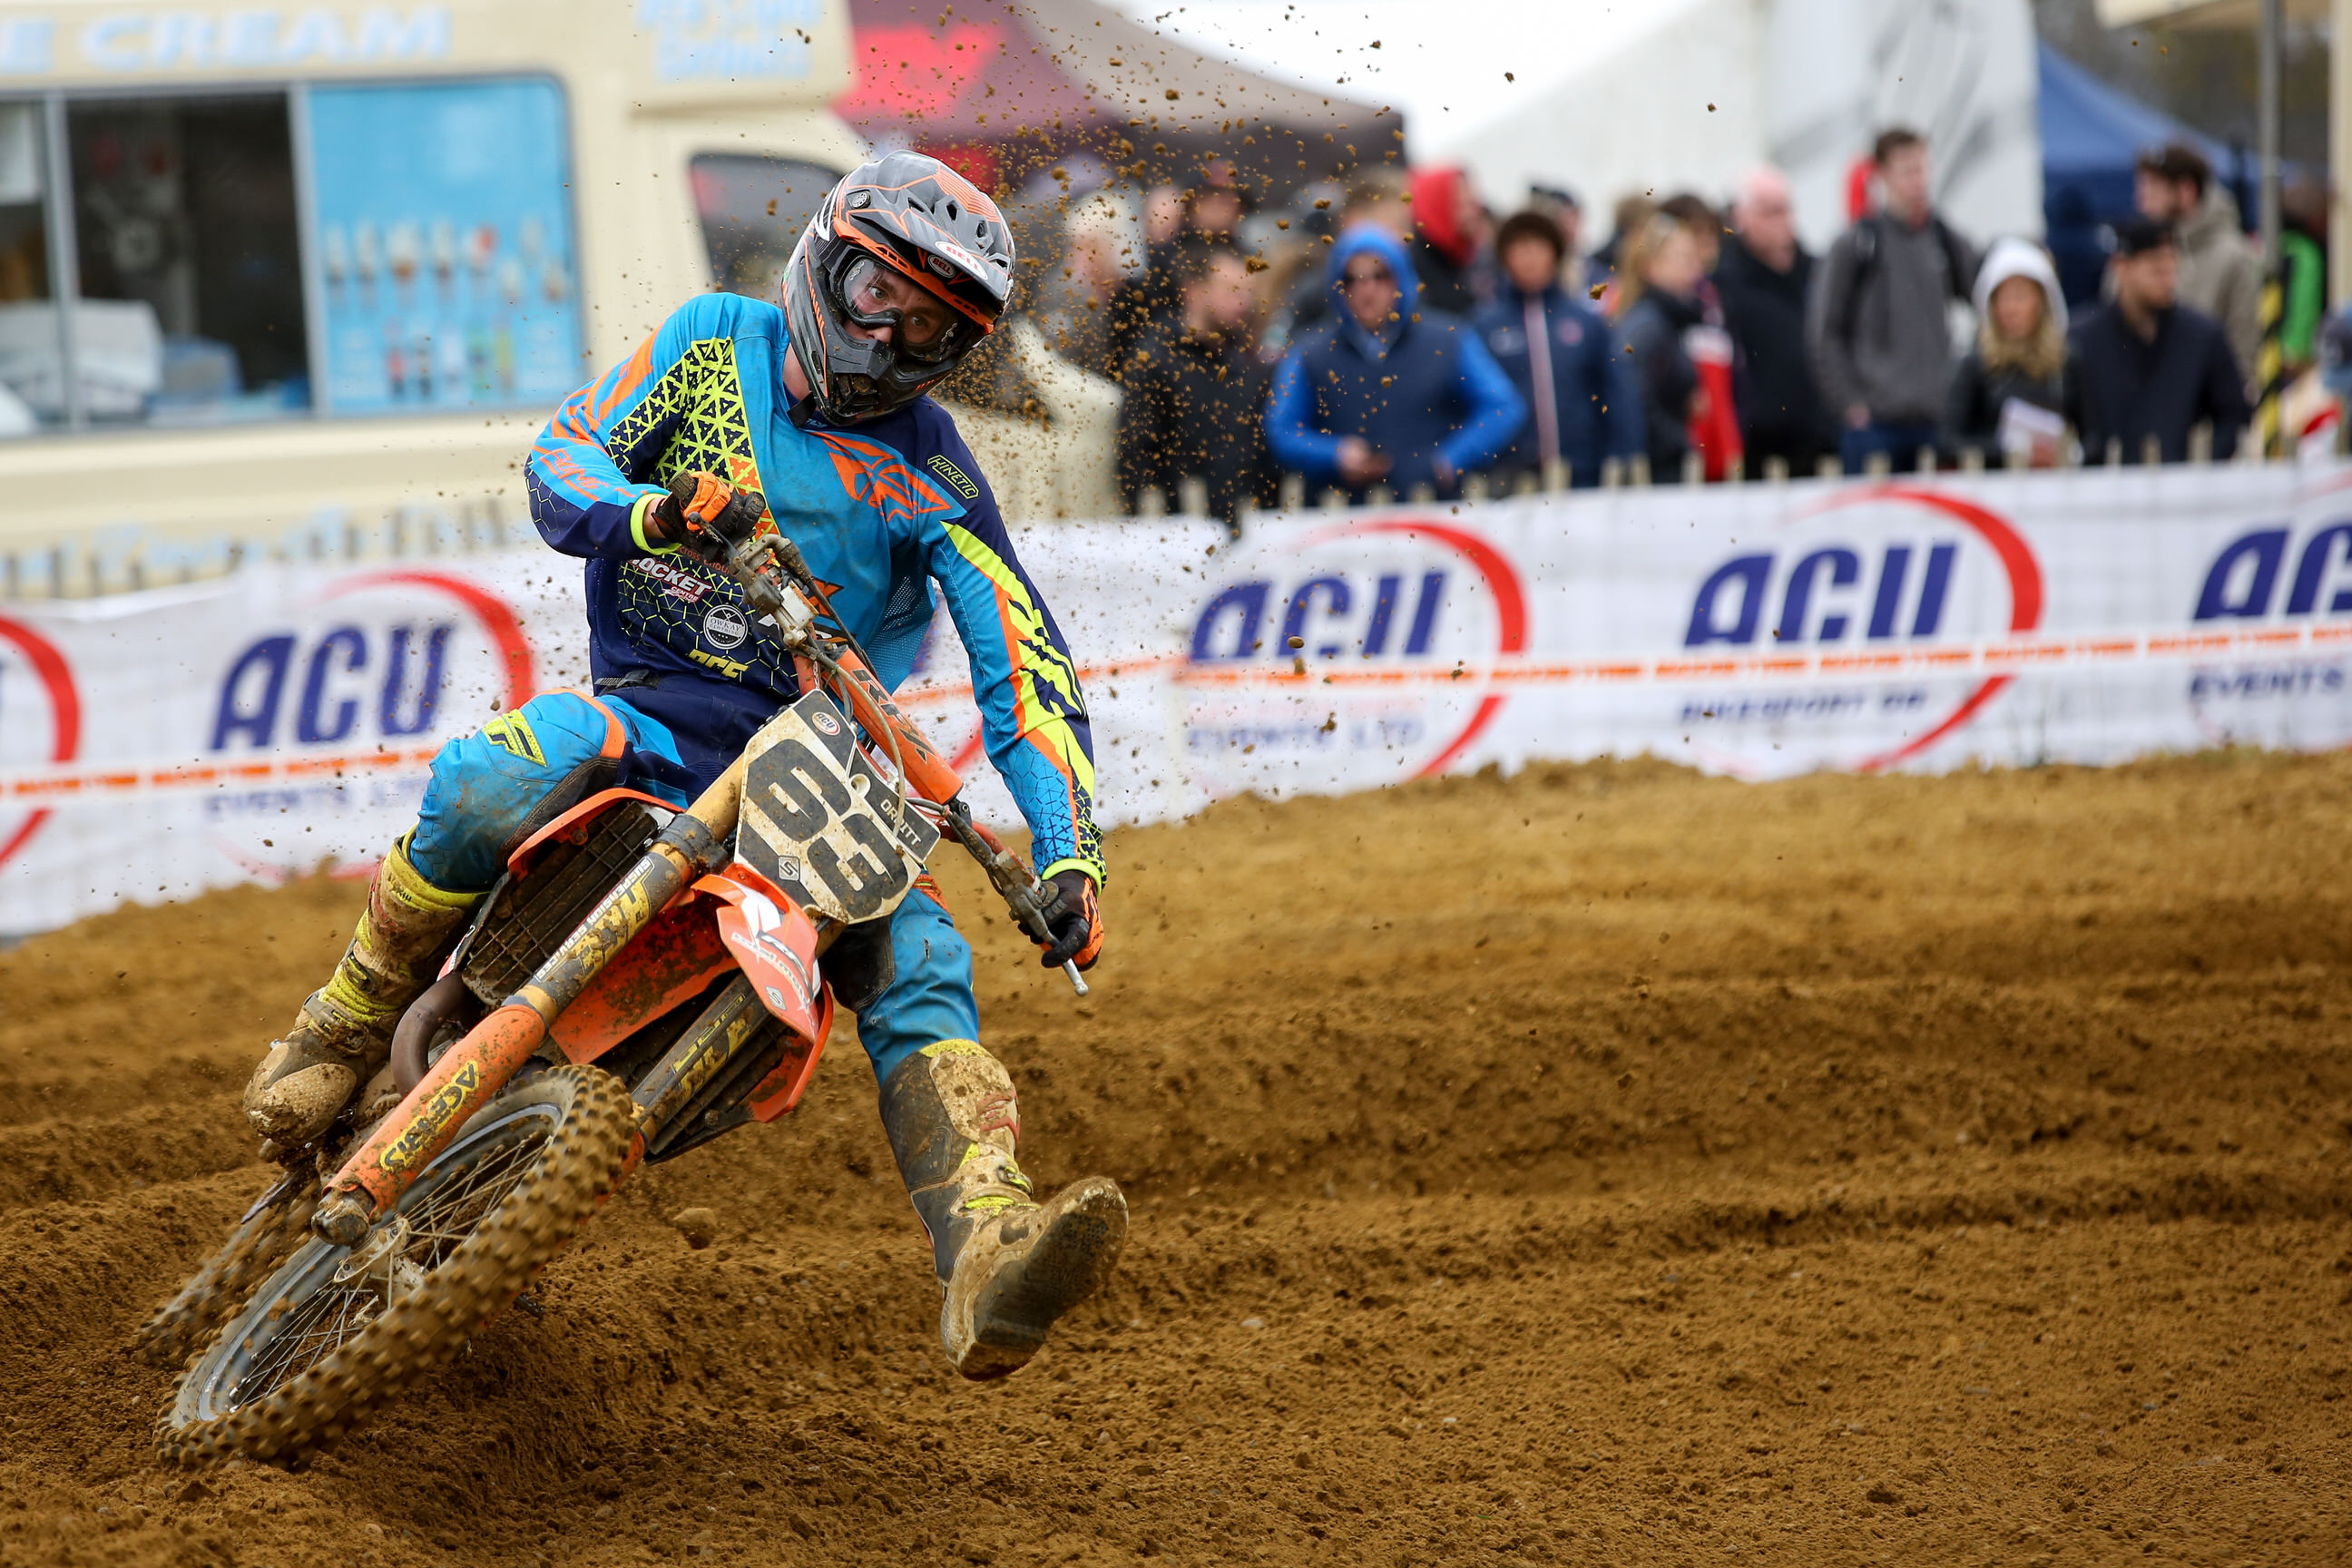 Maxxis Motocross Championship Round 2